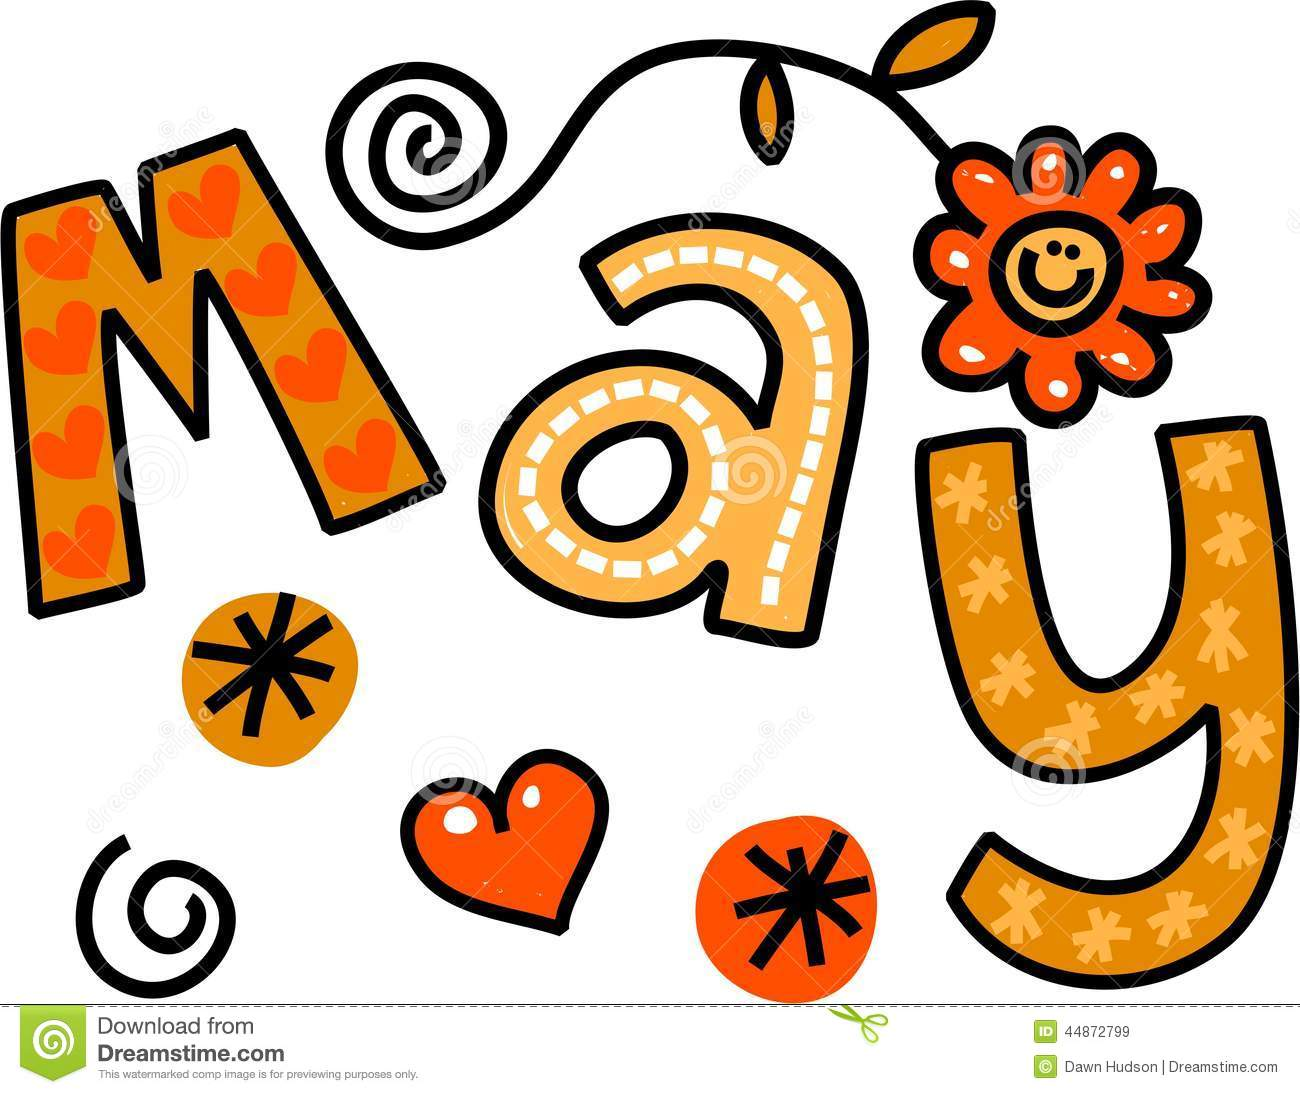 month-may-clipart-free-large-images-Zg87JN-clipart.jpg